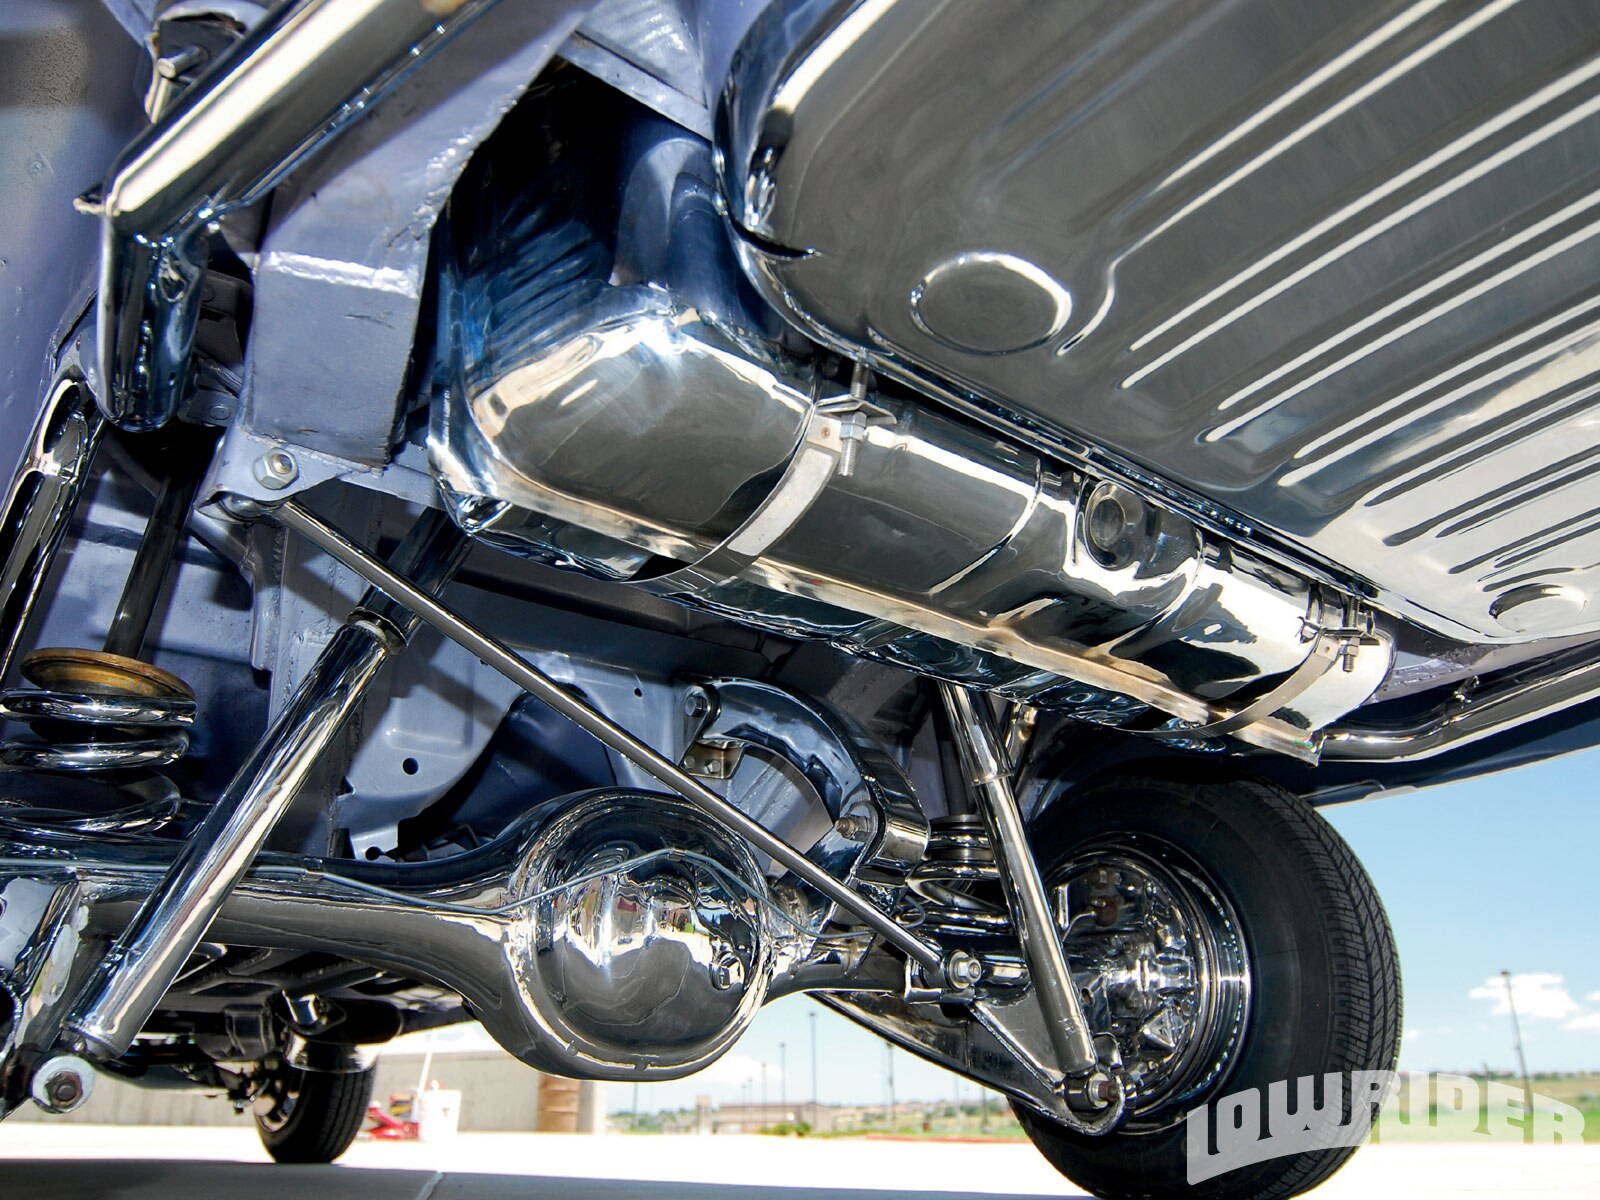 Lrmp O Chevrolet Impala Convertible Chromed Suspension Pieces on Dakota Rims